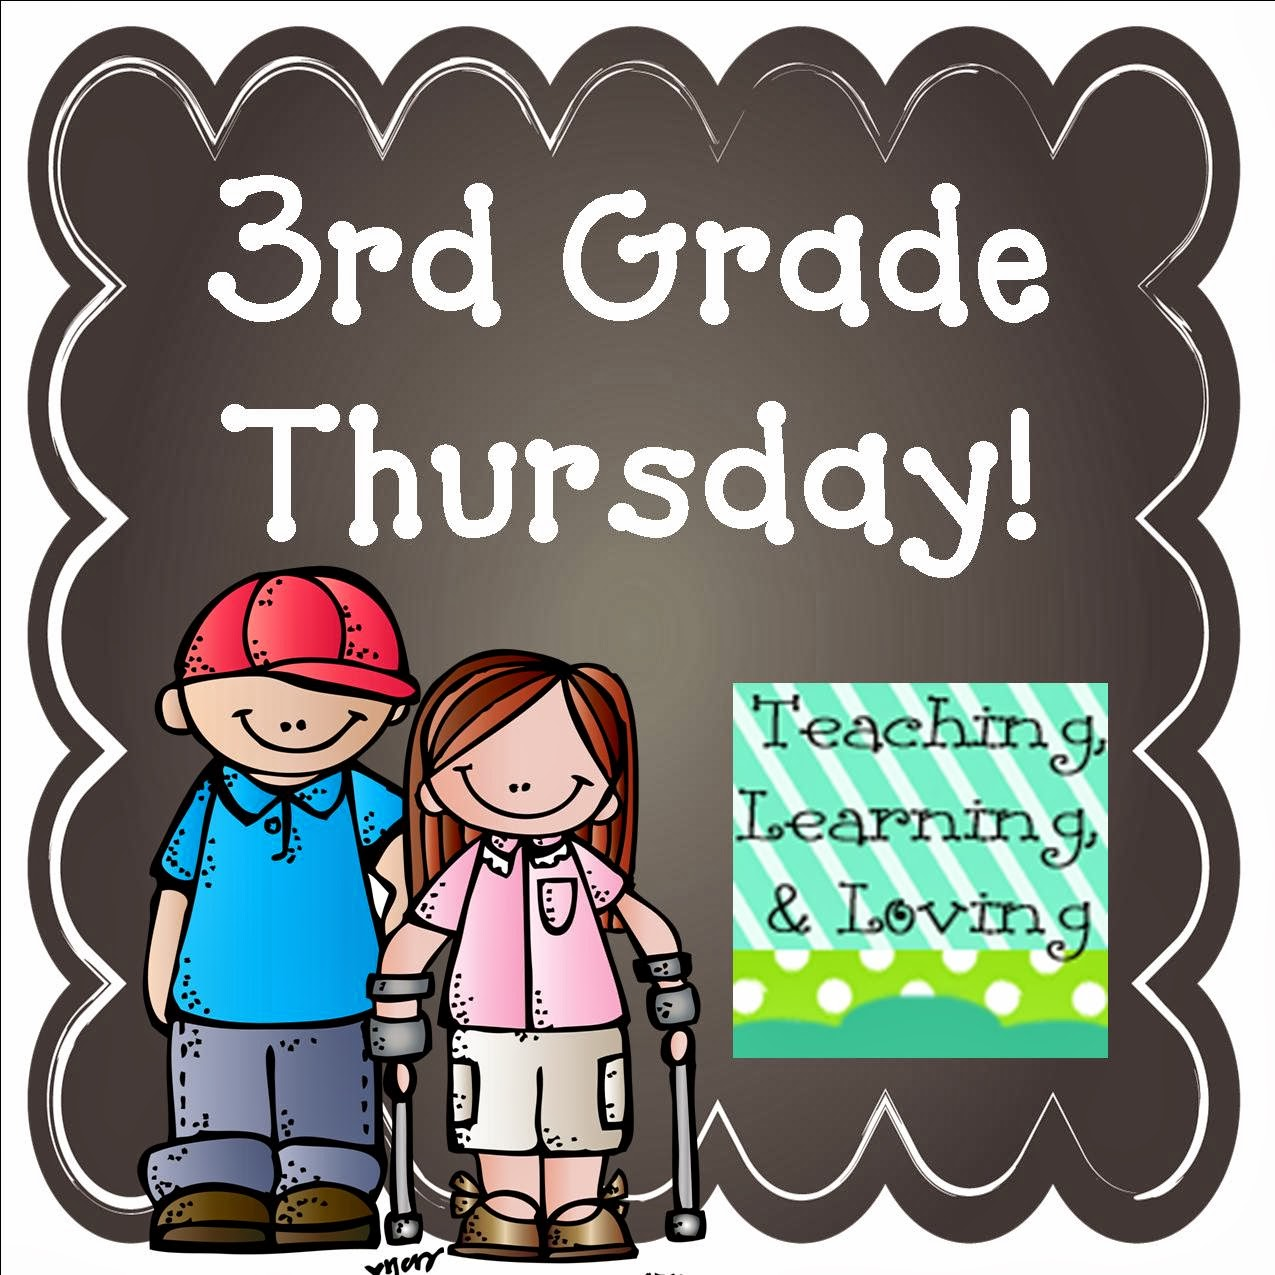 Teaching Learning Loving Third Grade Thursday Fluency Teachherpleaseblogspotcom This Week I Wanted To Share With You Guys Things Have Been Working On My Kiddos During Rti Drum Roll Please